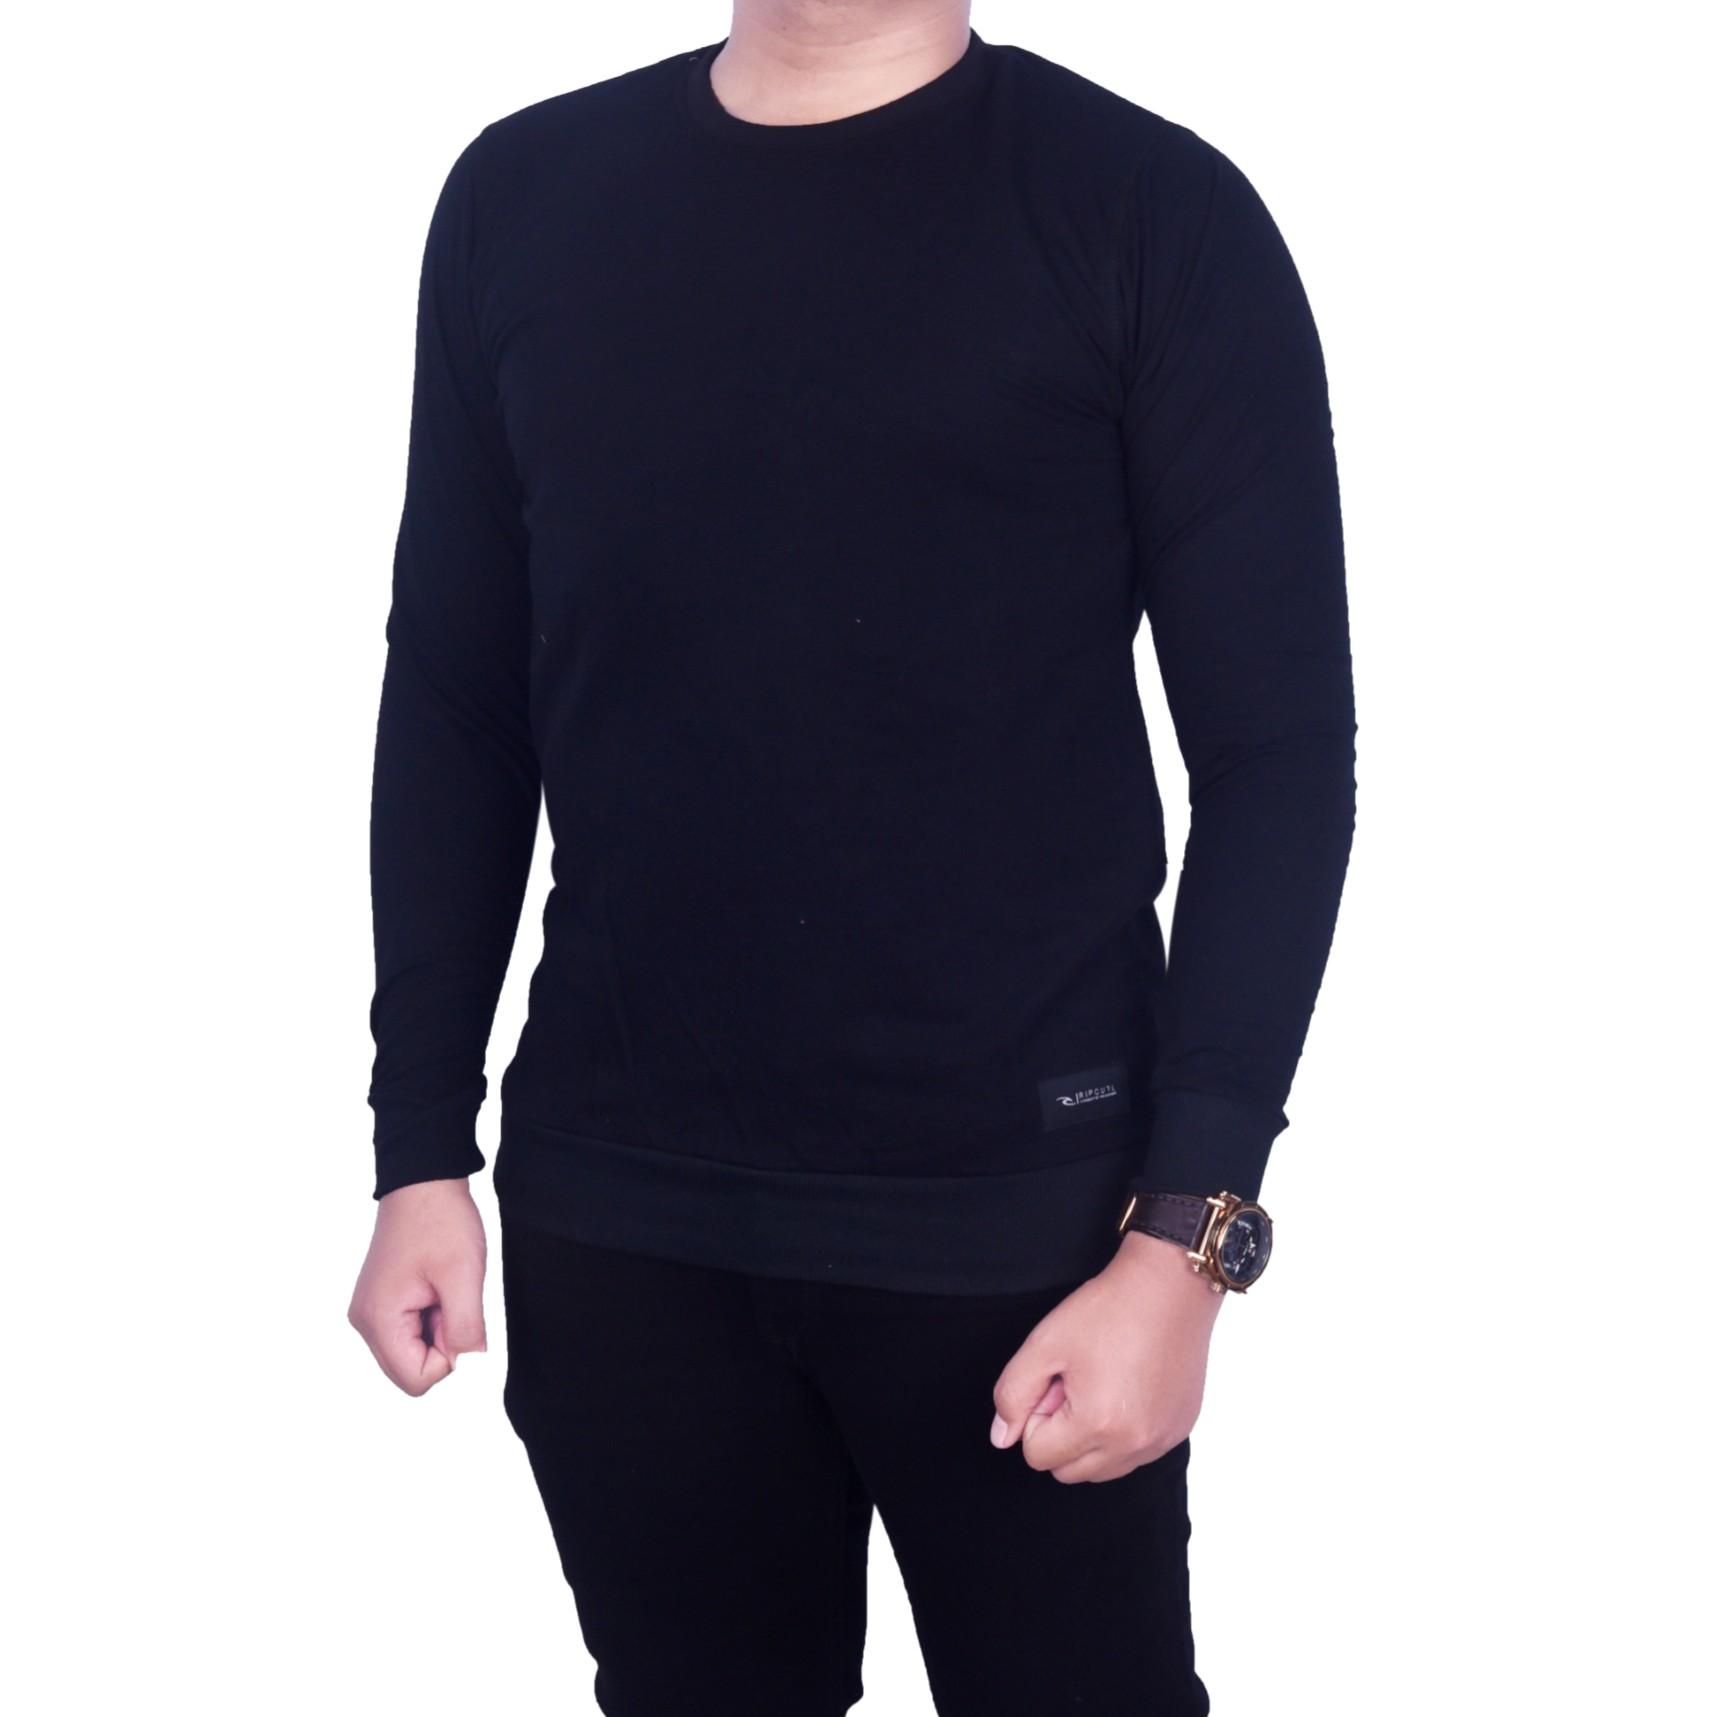 dgm fashion1 Sweater Hitam Polos Distro Murah Sweater Unisex Sweater Man  Casual Sweater Pria 9861679fea